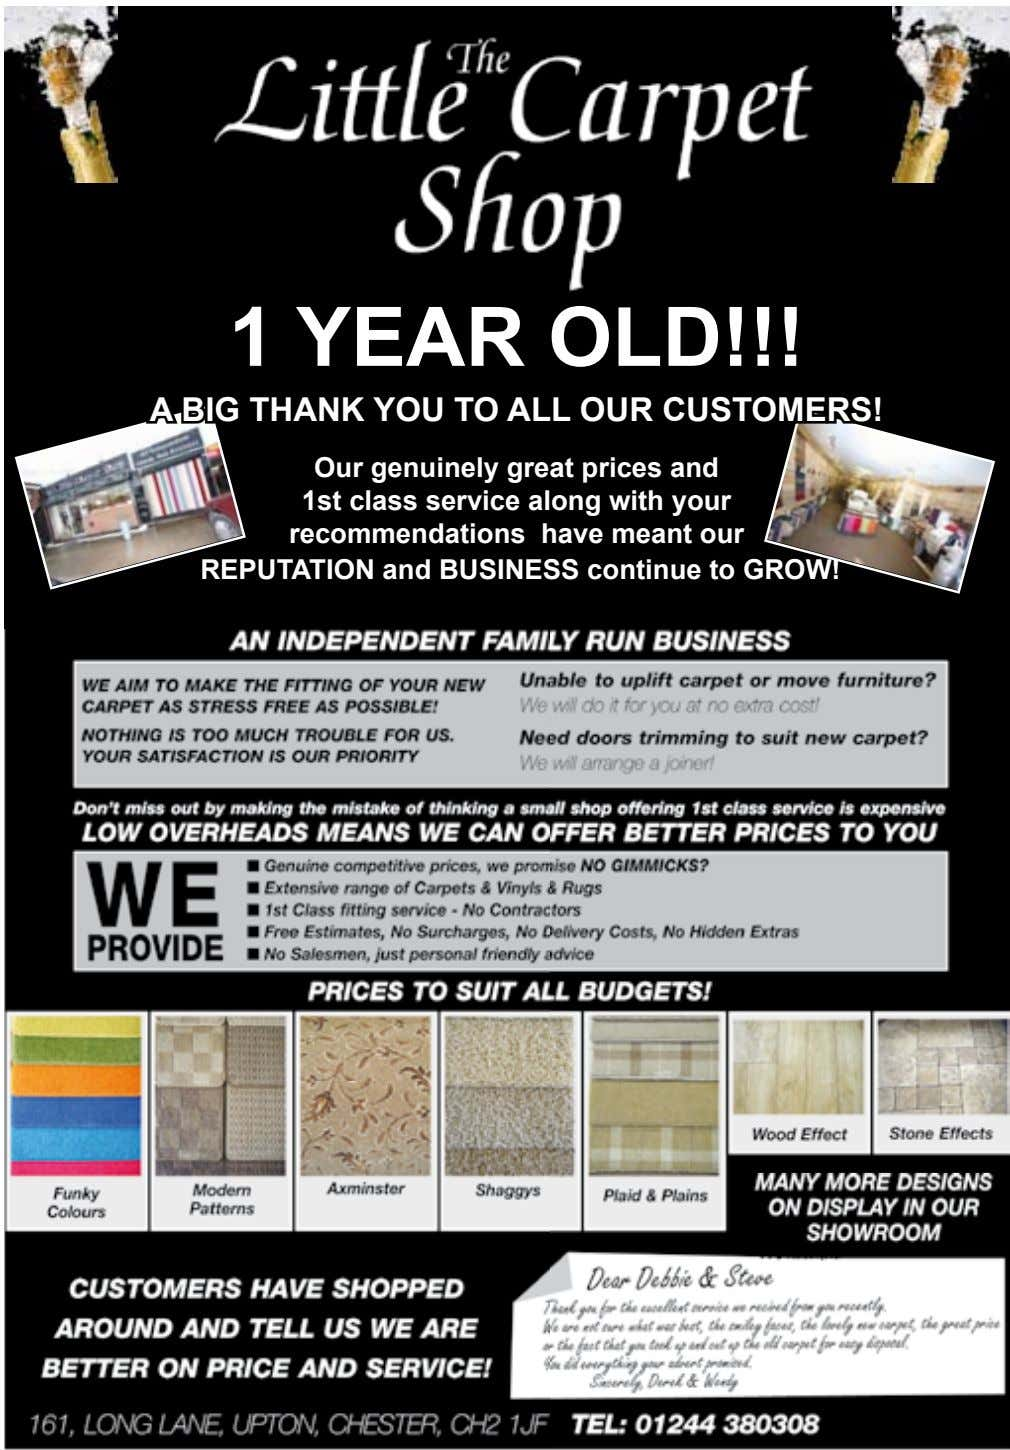 1 YEAR OLD!!! A BIG THANK YOU TO ALL OUR CUSTOMERS! Our genuinely great prices